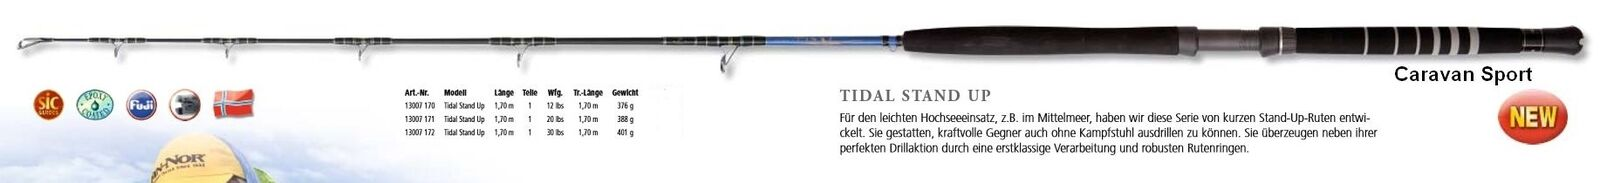 CANNA DA PESCA TIDAL STAND UP 30 LB FIN FIN FIN NOR 1,70 MT TRAINA ROD FIN-NOR MARE a6983f